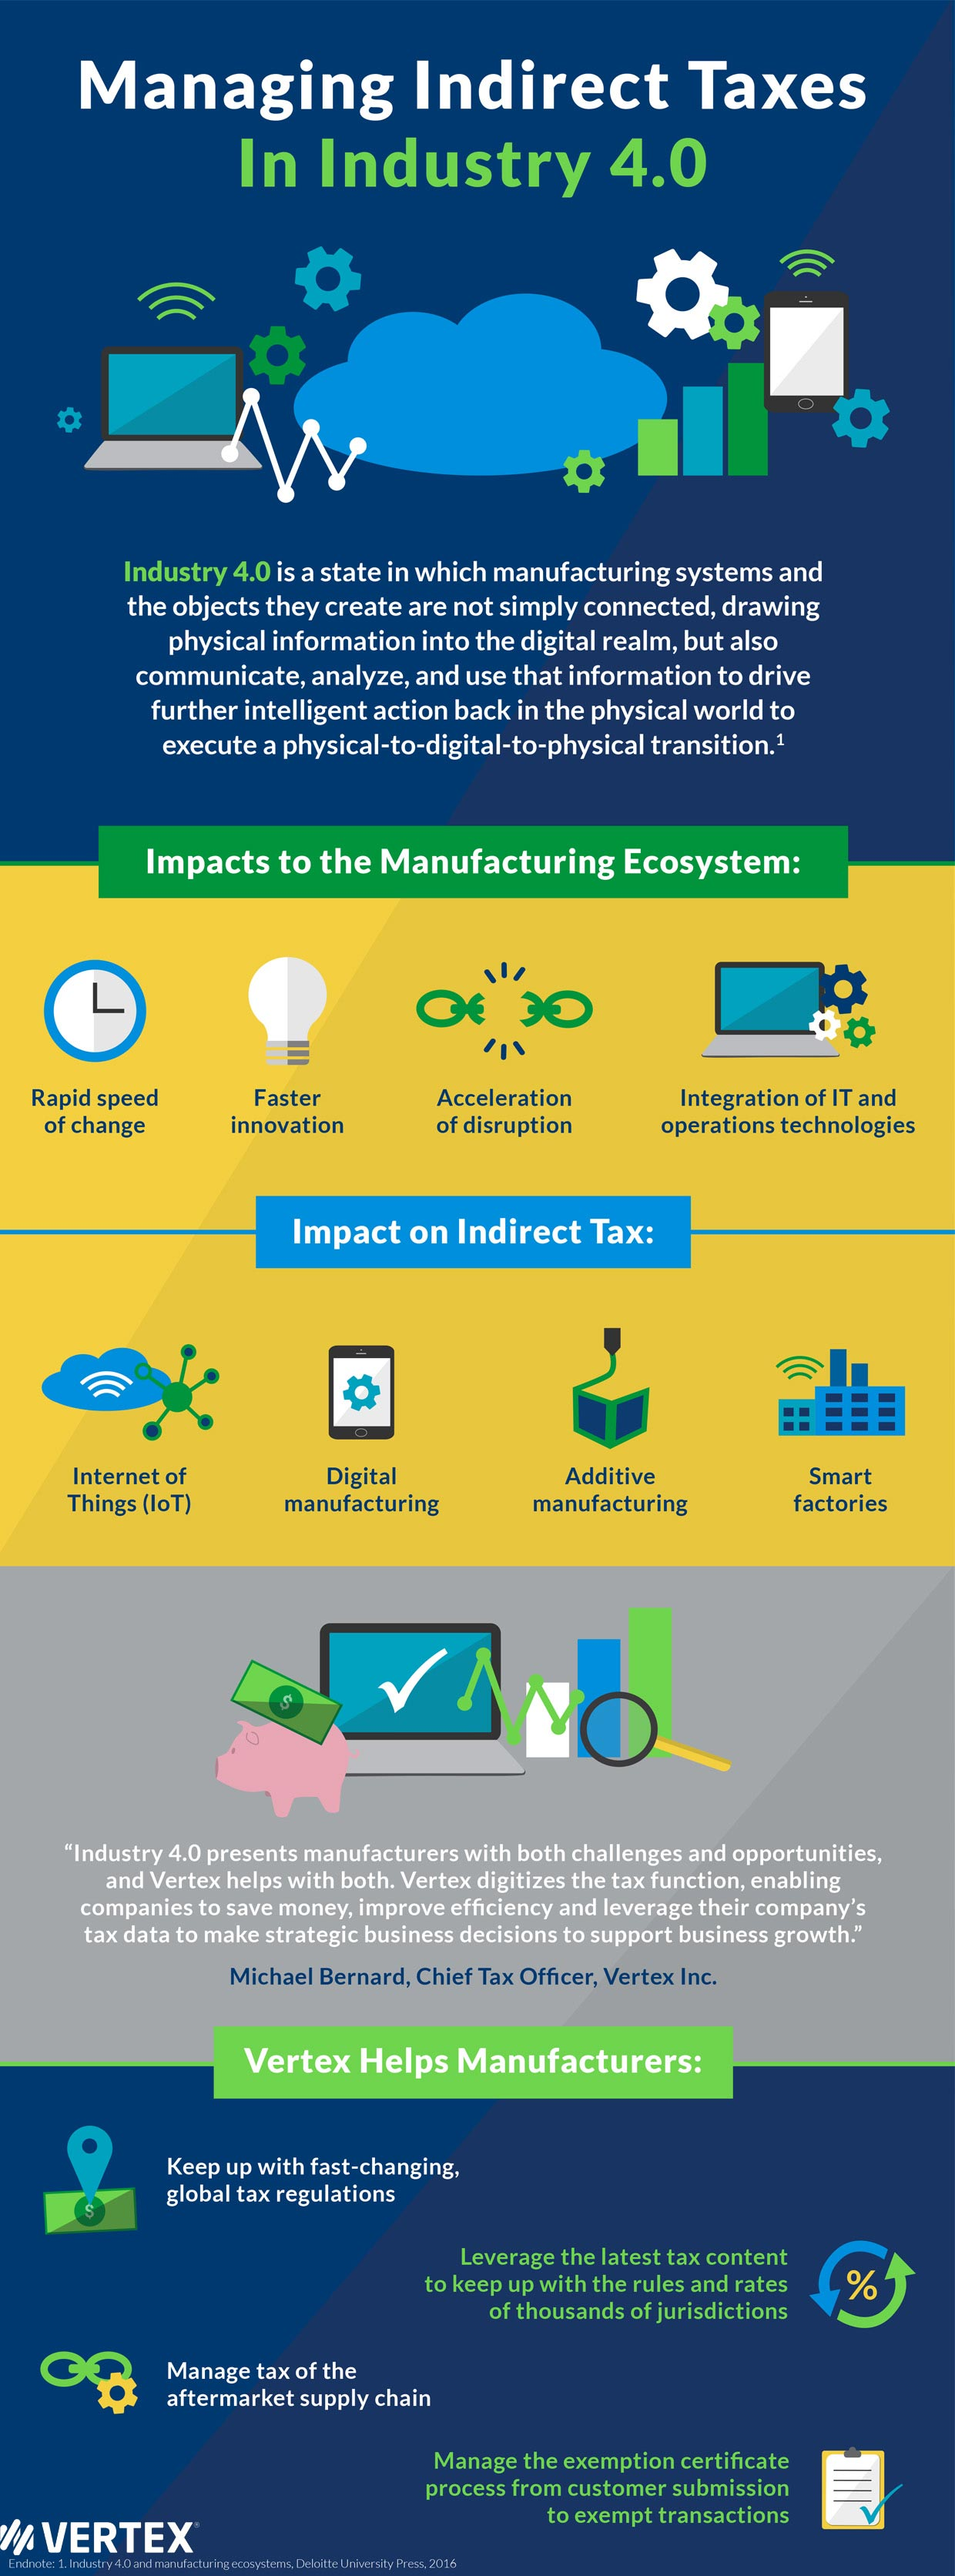 Managing Indirect Taxes in Industry.